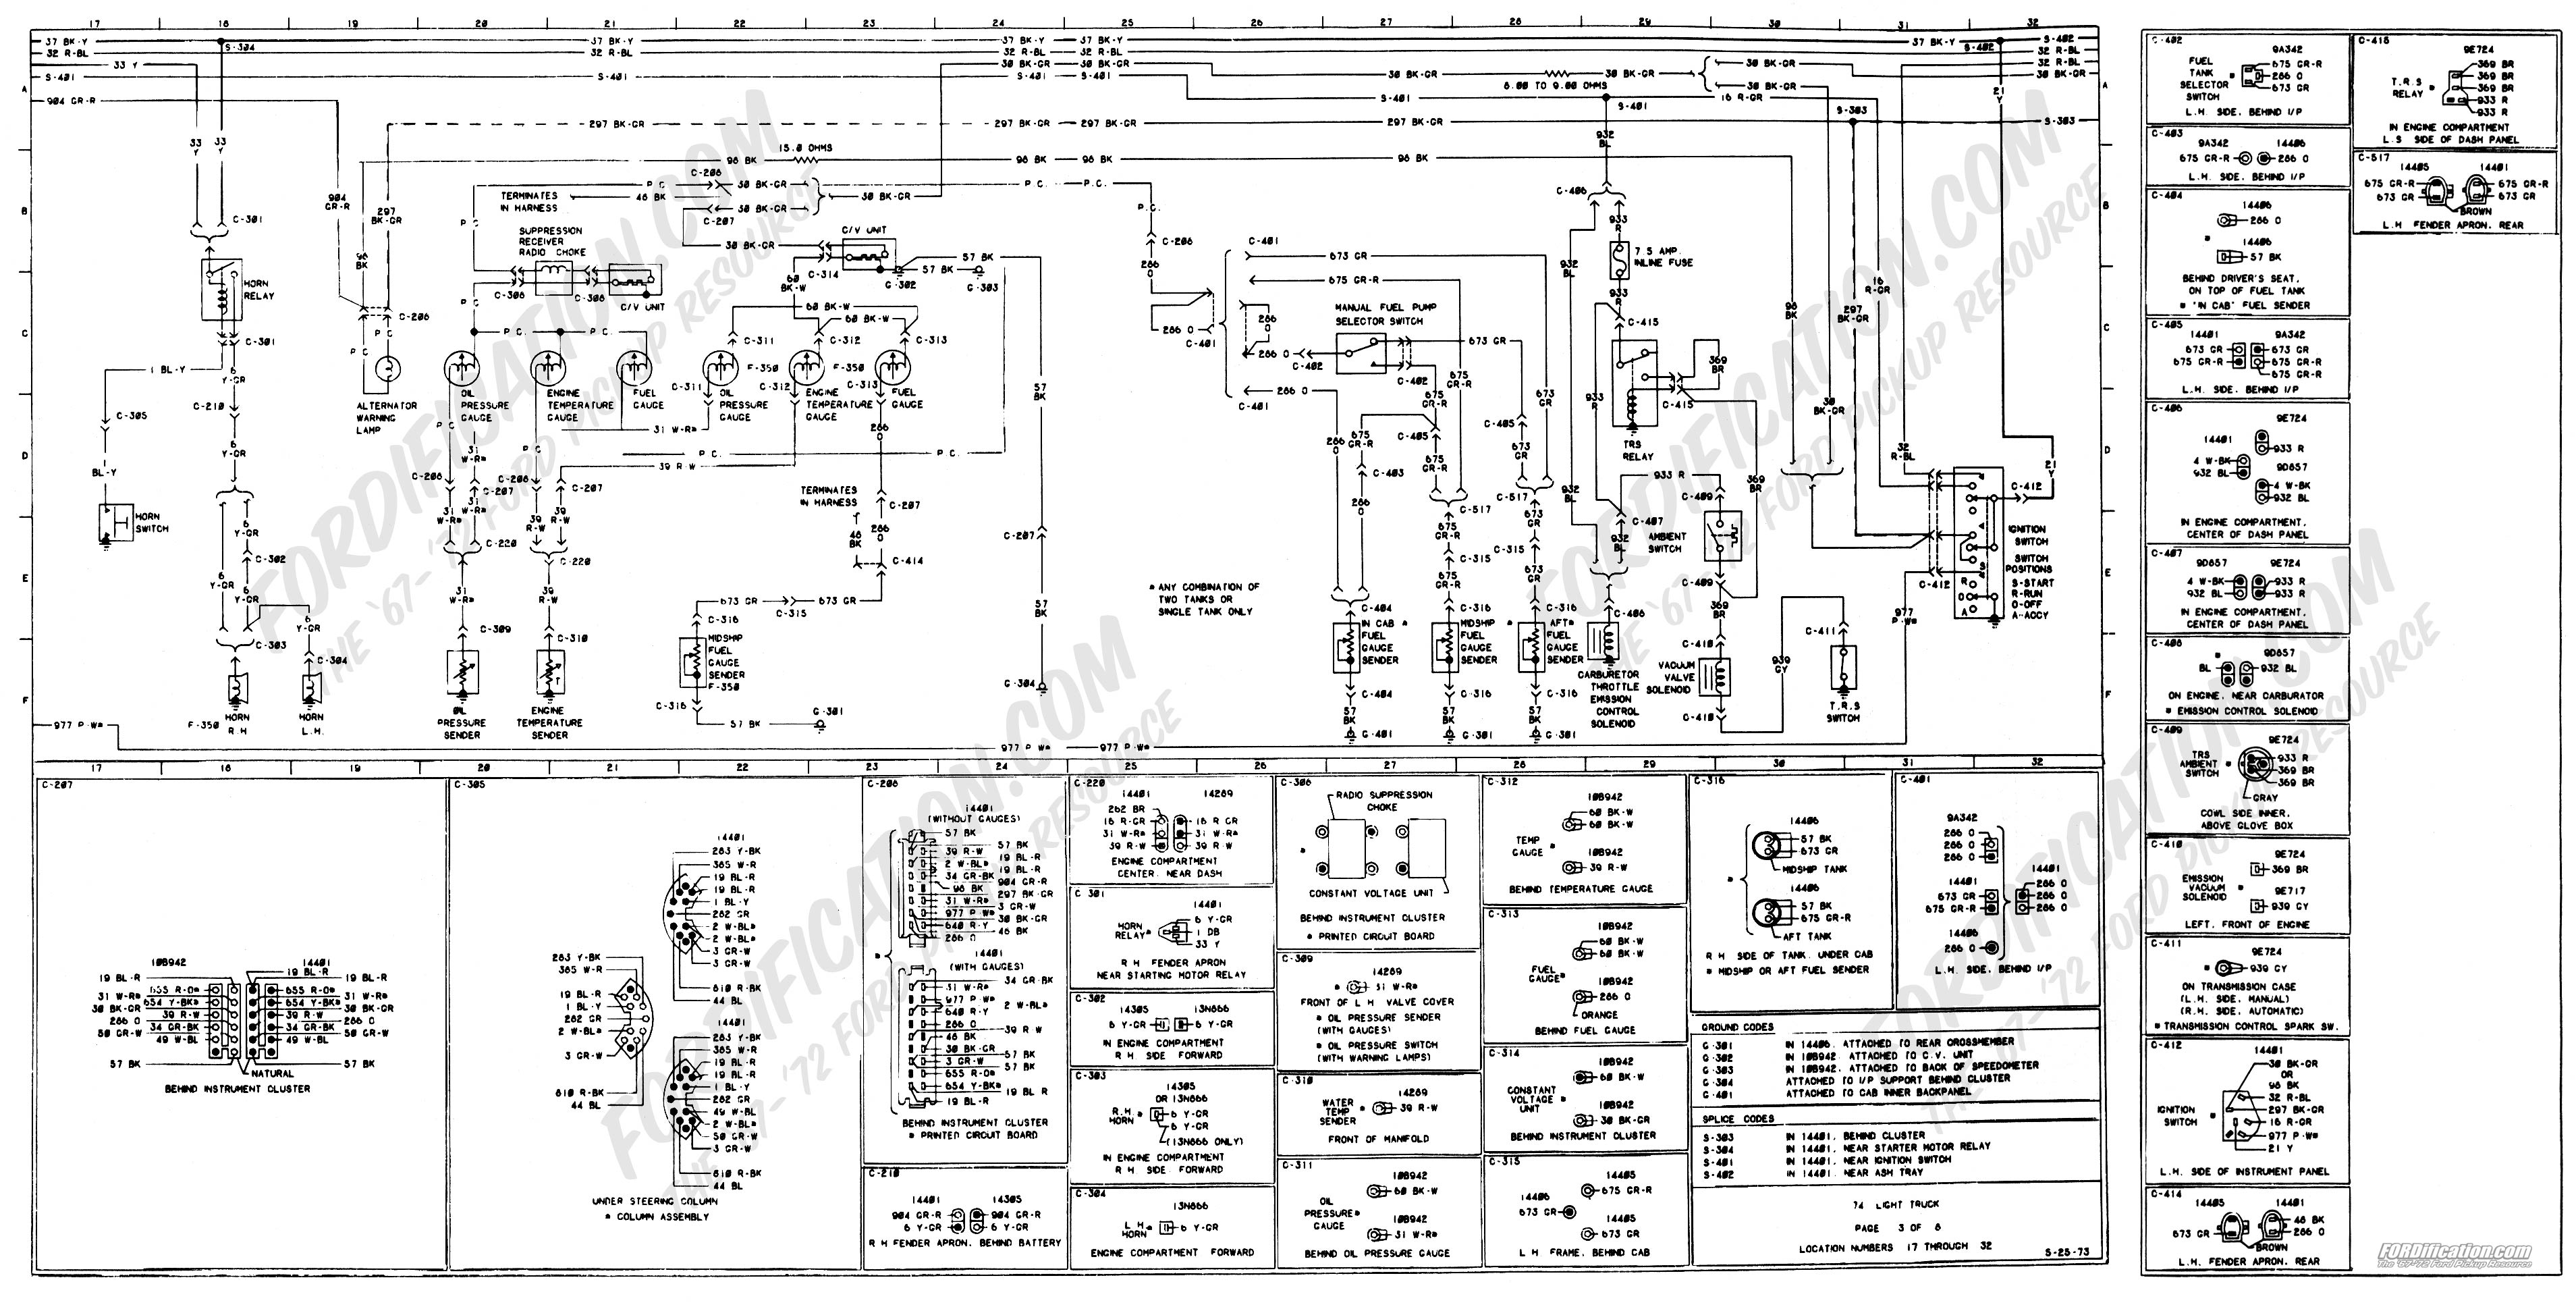 Fuse Box Schematic For 1978 Bronco Library Of Wiring Diagrams 2002 E350 Diagram 1995 Ford On Rh Abetter Pw Jeep Grand Cherokee 2005 Ranger